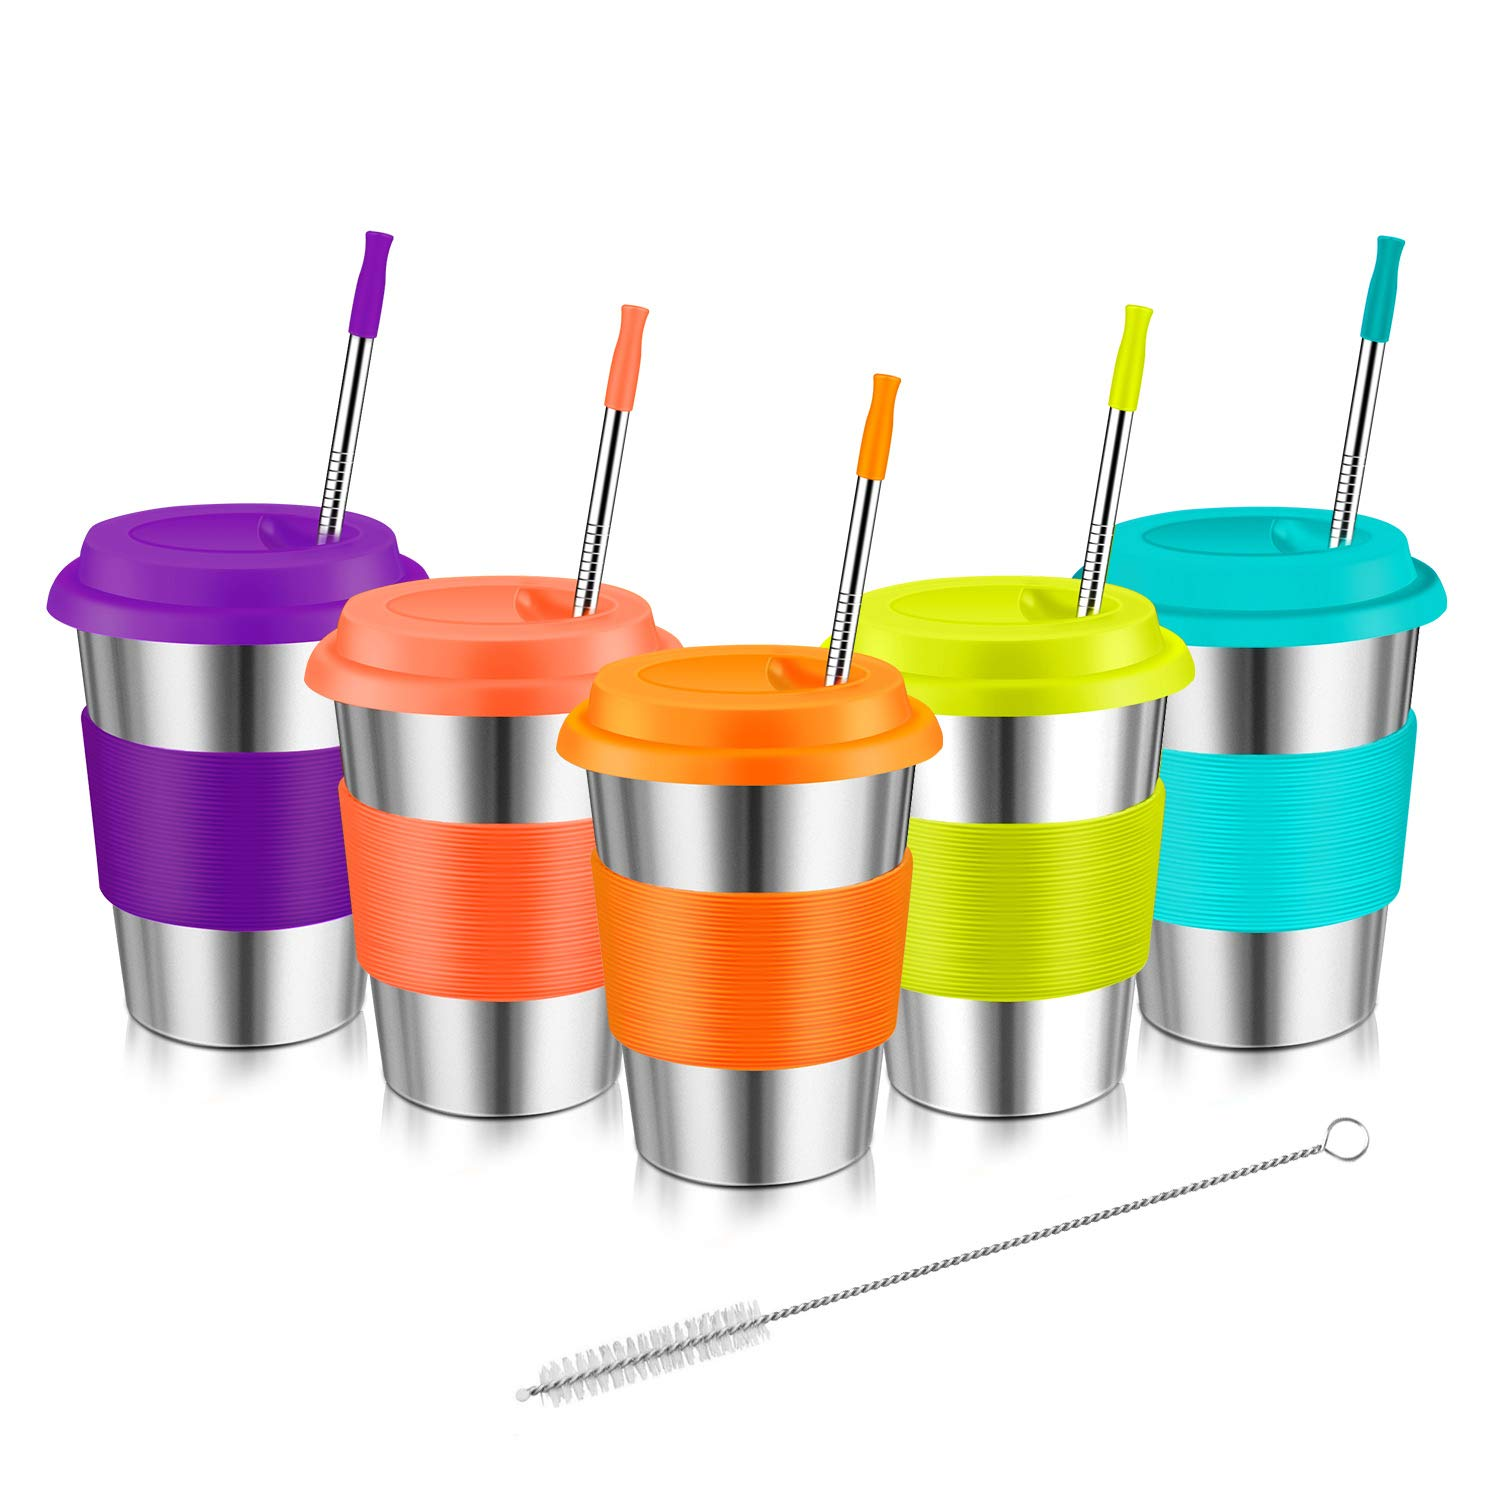 Stainless Steel Cups For Kids, Kereda 12oz. 5-Pack Tumblers Set Coffee Mugs Premium Drinking Glasses With Lids And Metal Straws Unbreakable